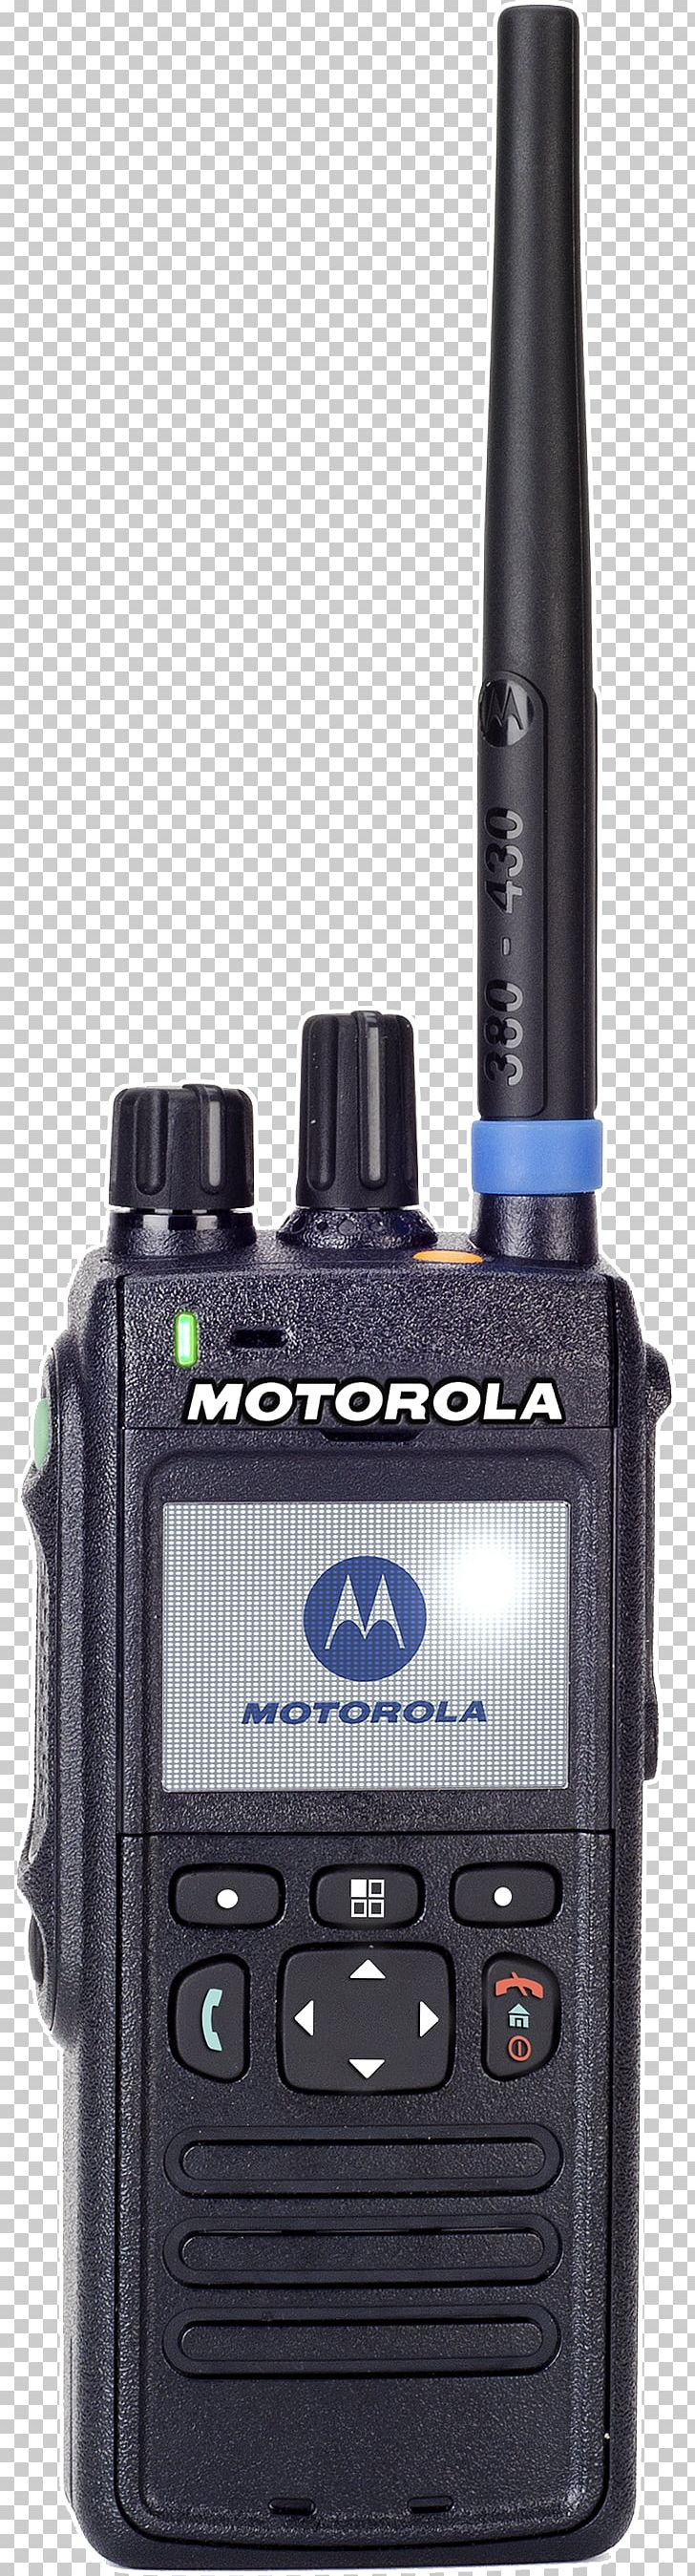 Terrestrial Trunked Radio Motorola Solutions Walkie-talkie Communication PNG, Clipart, Barbar, Business, Communication, Communication Device, Electronic Device Free PNG Download